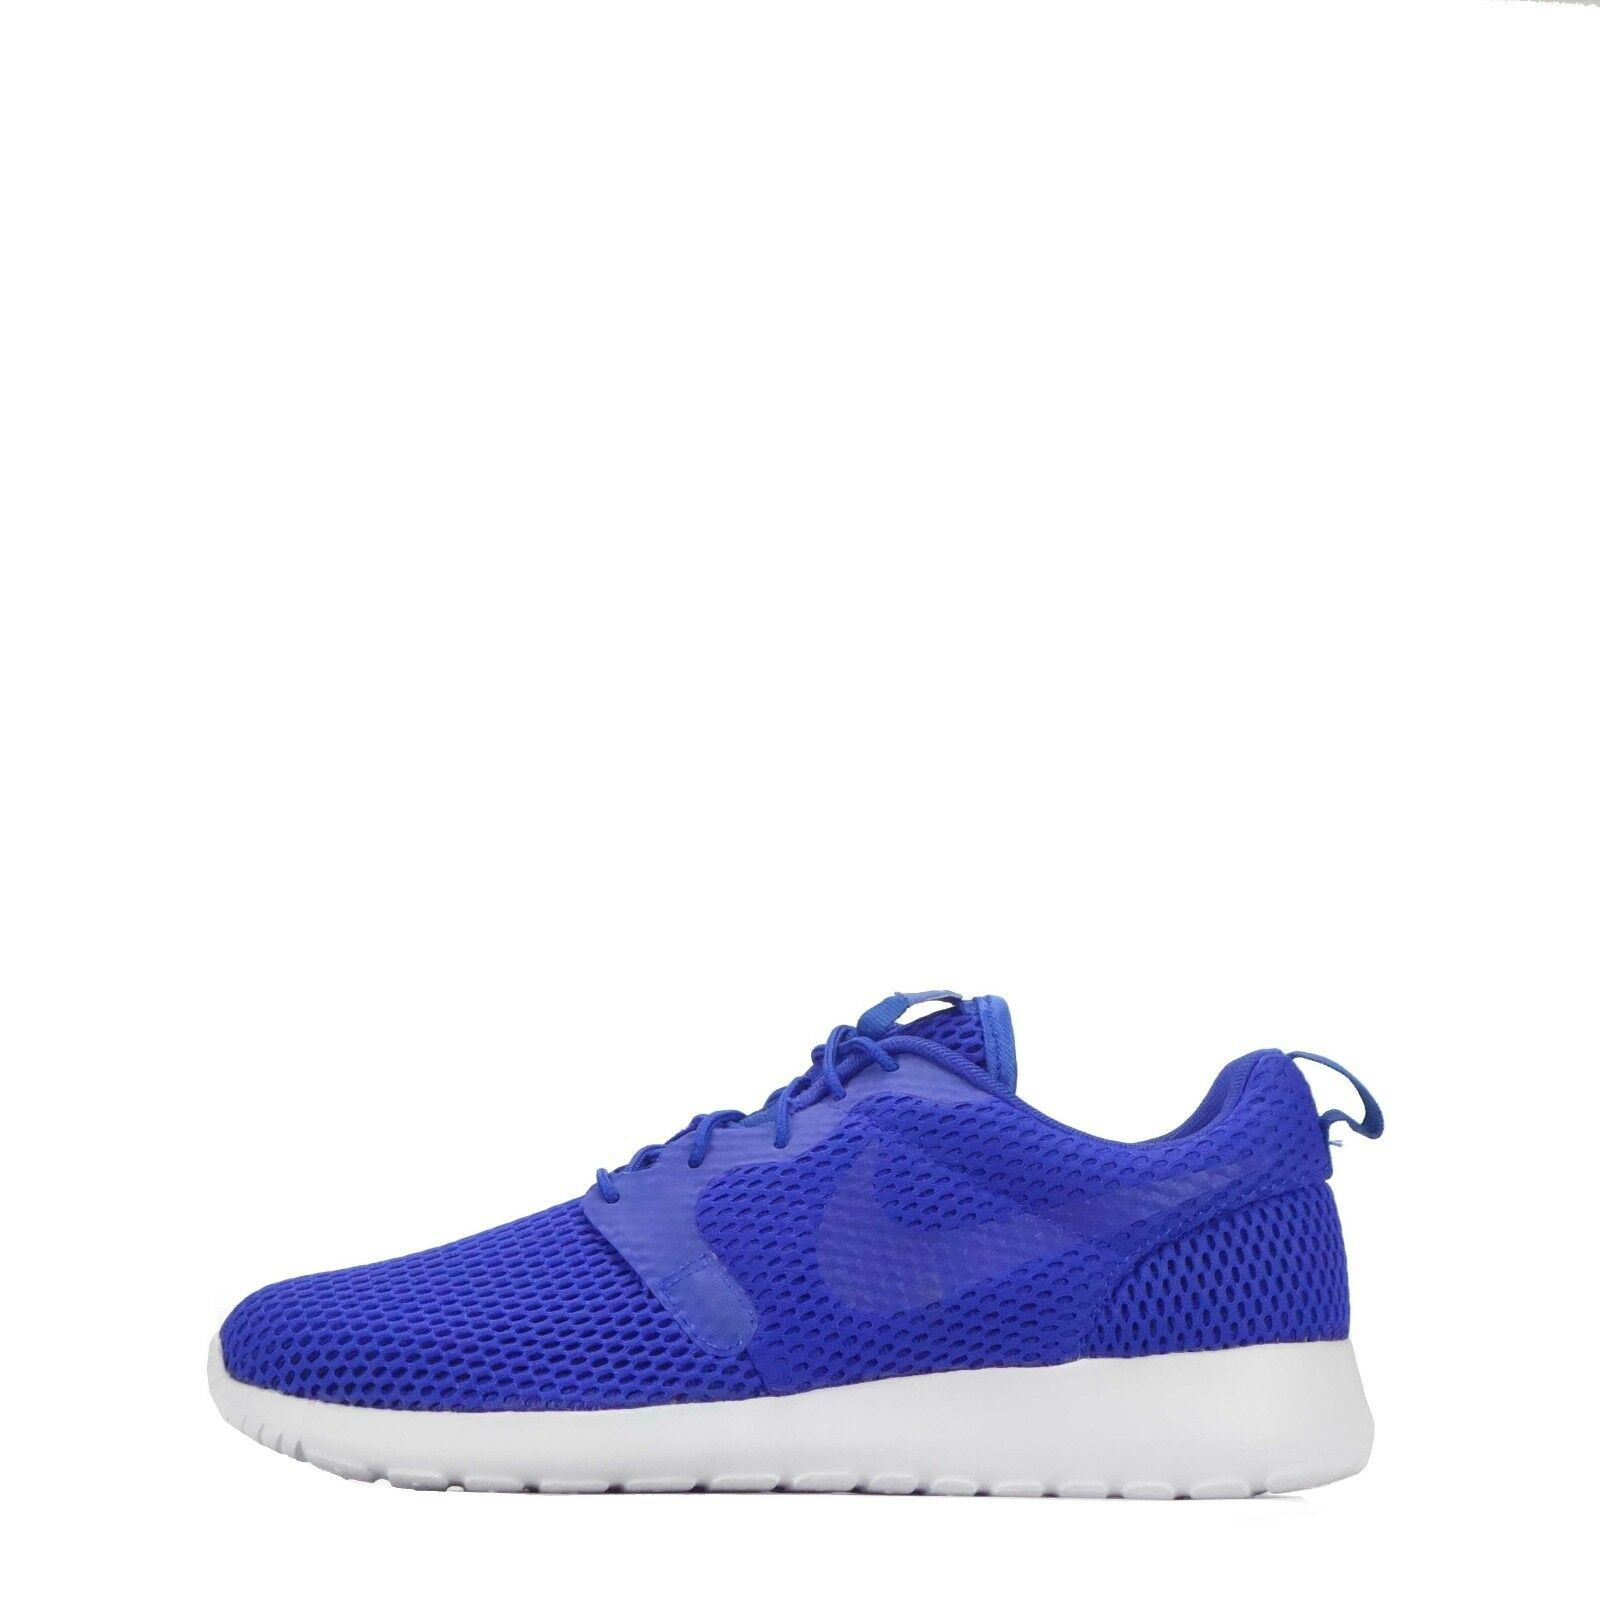 Nike Men's Roshe One Hyperfuse Breathe Men's Nike Casual Trainers Shoes in Blue/White dec0f3